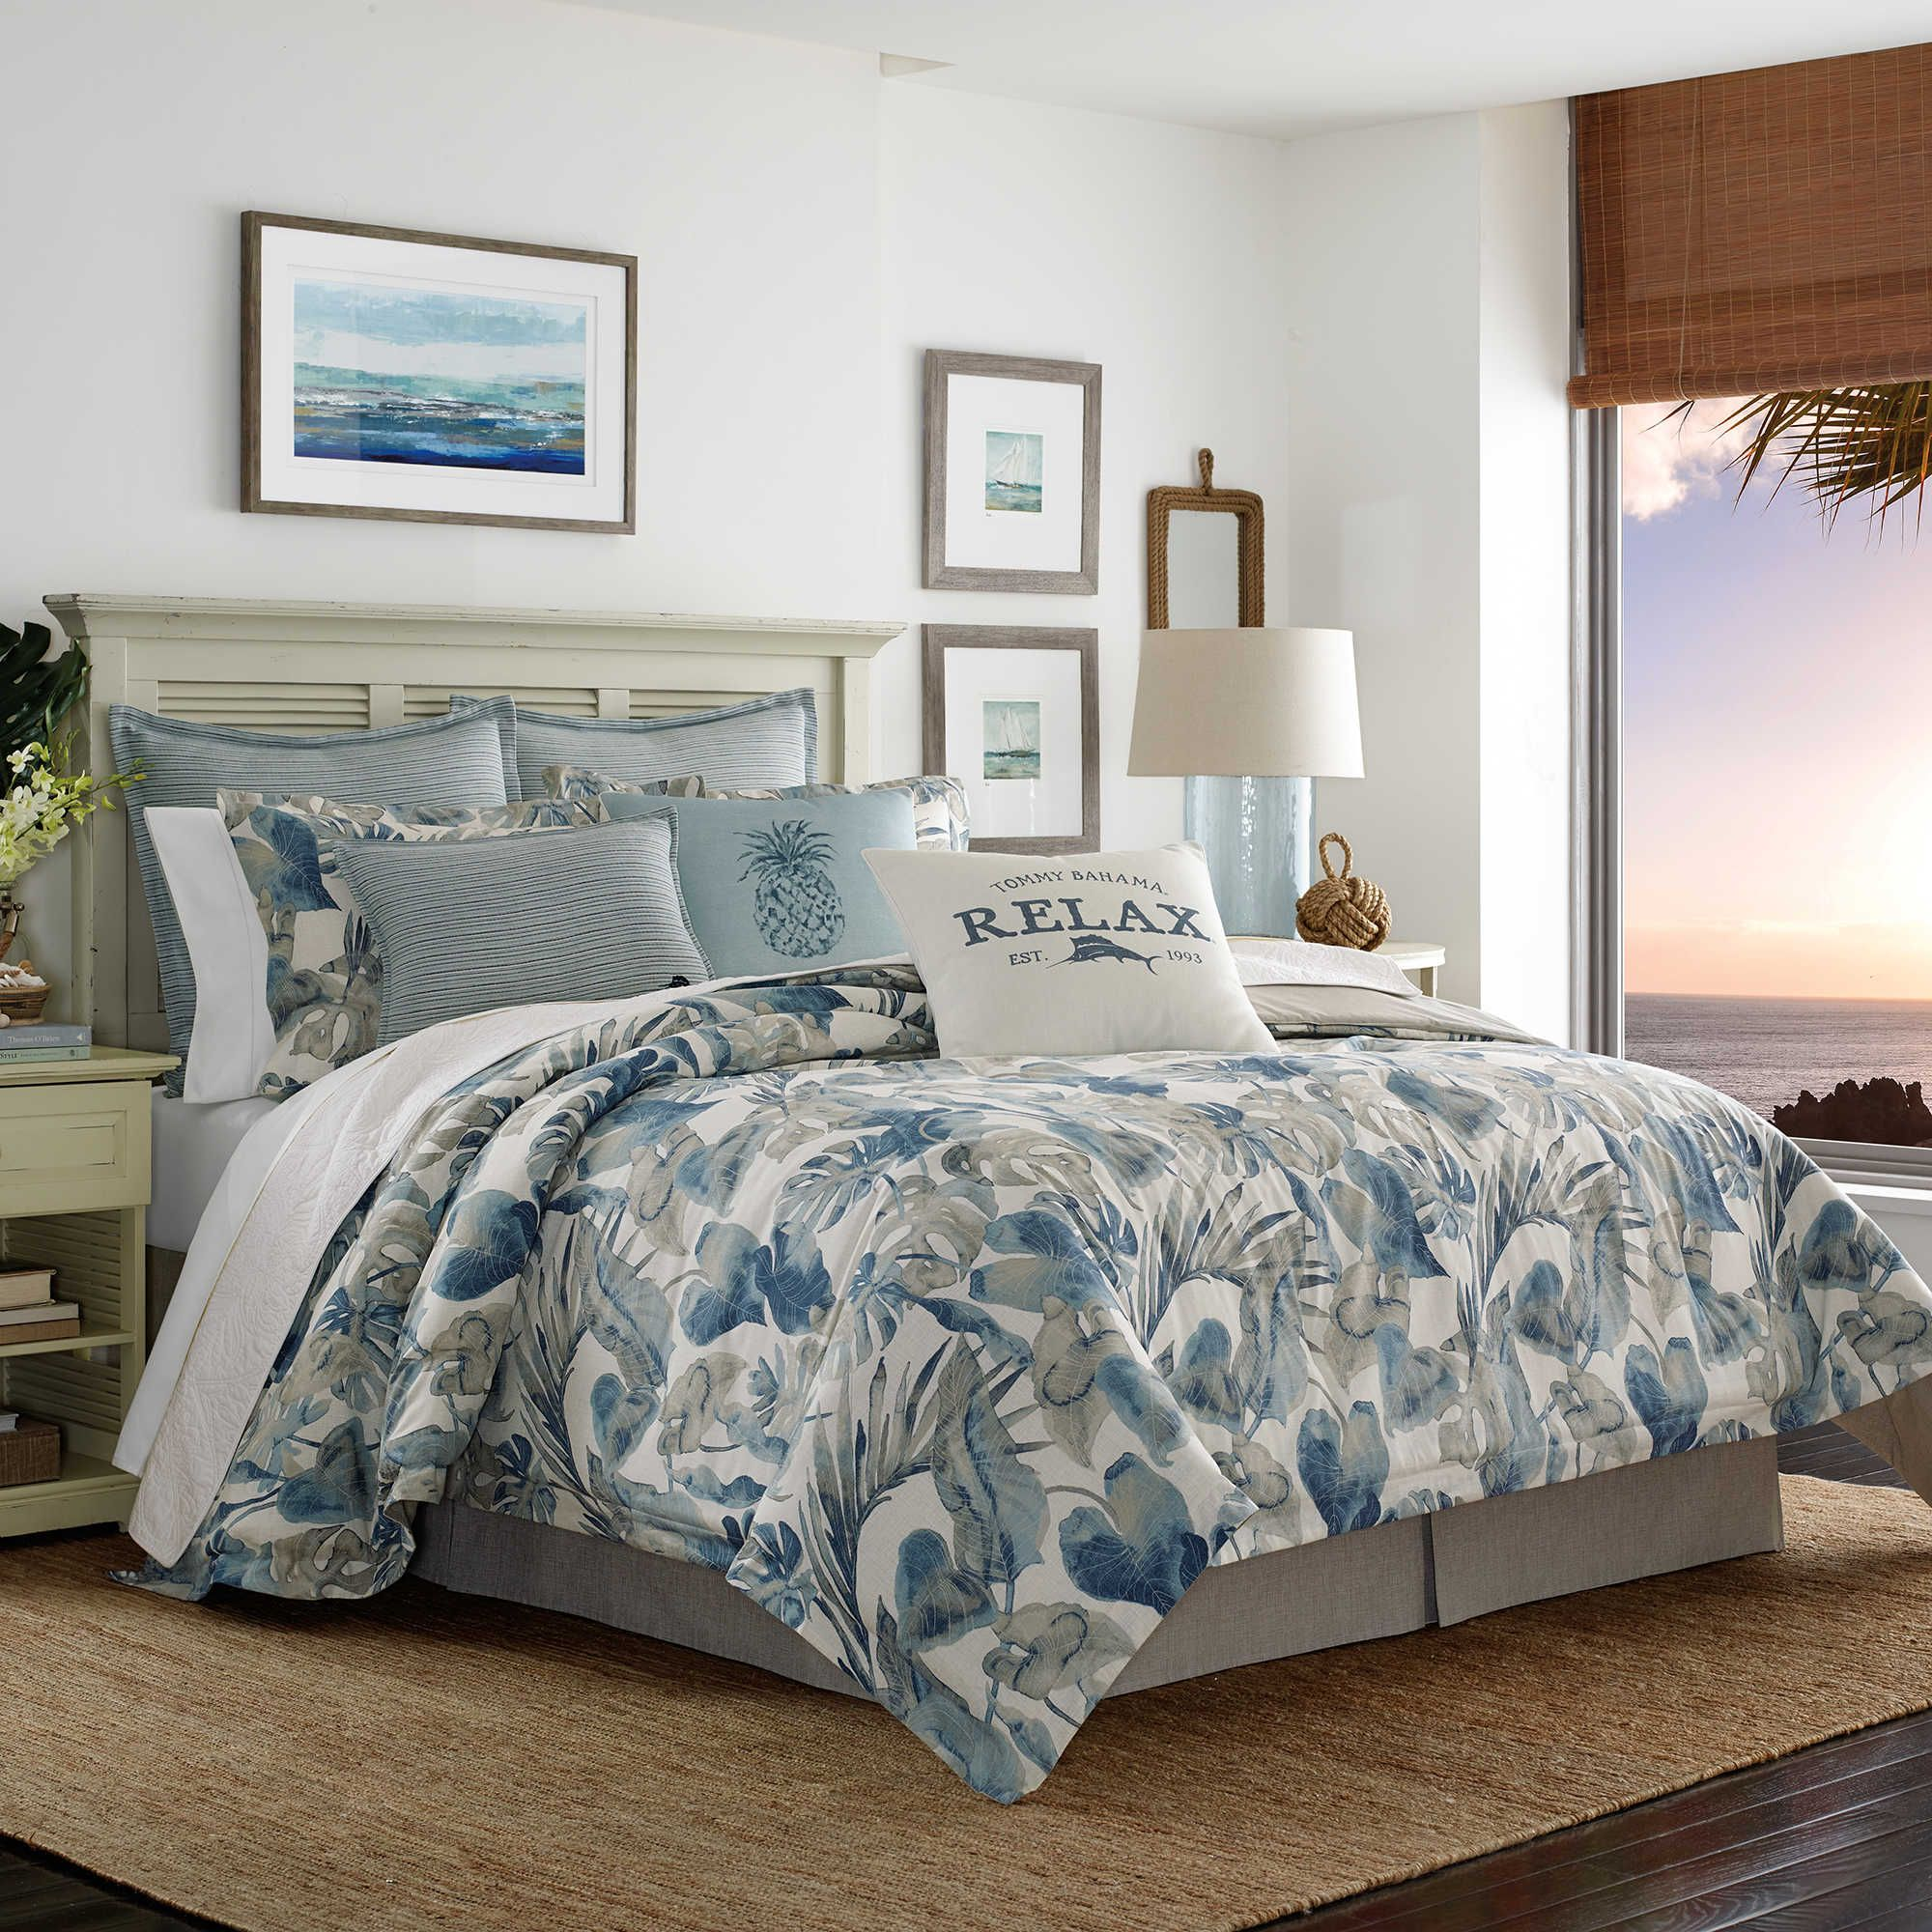 Bed Bath Beyond Tommy Bahama Raw Coast Duvet Cover Set For The